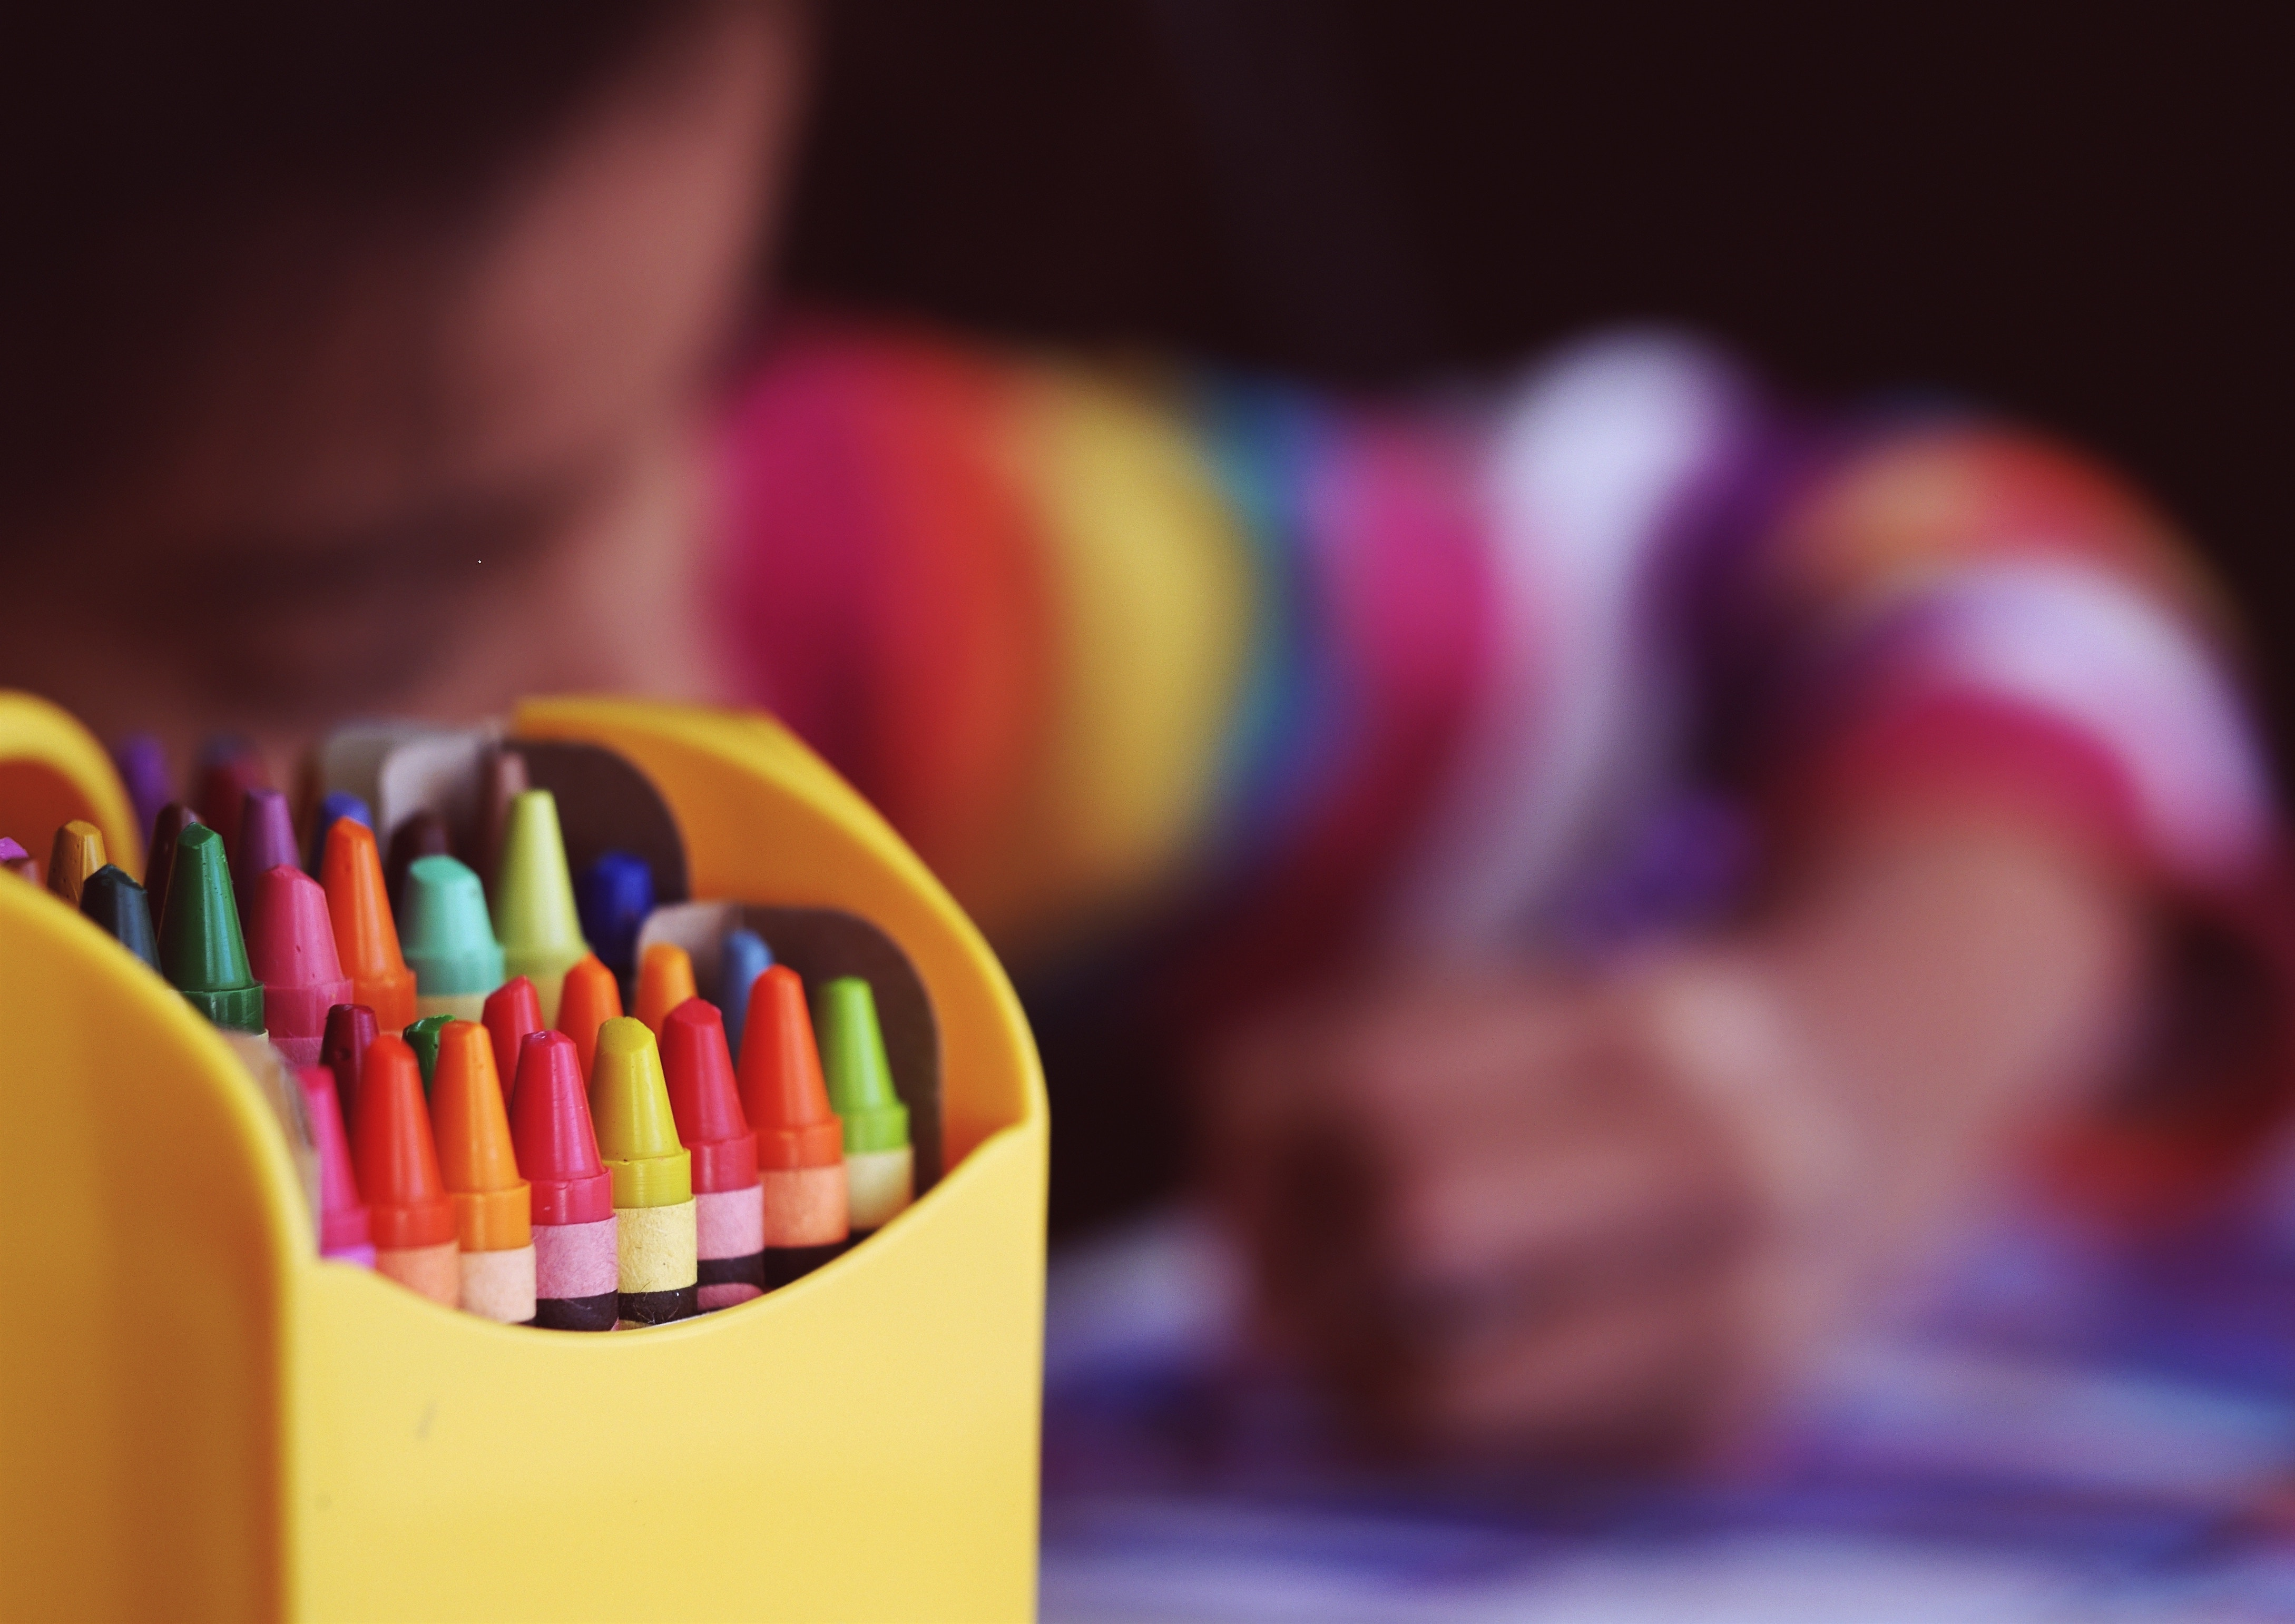 Coloring Inside The Box